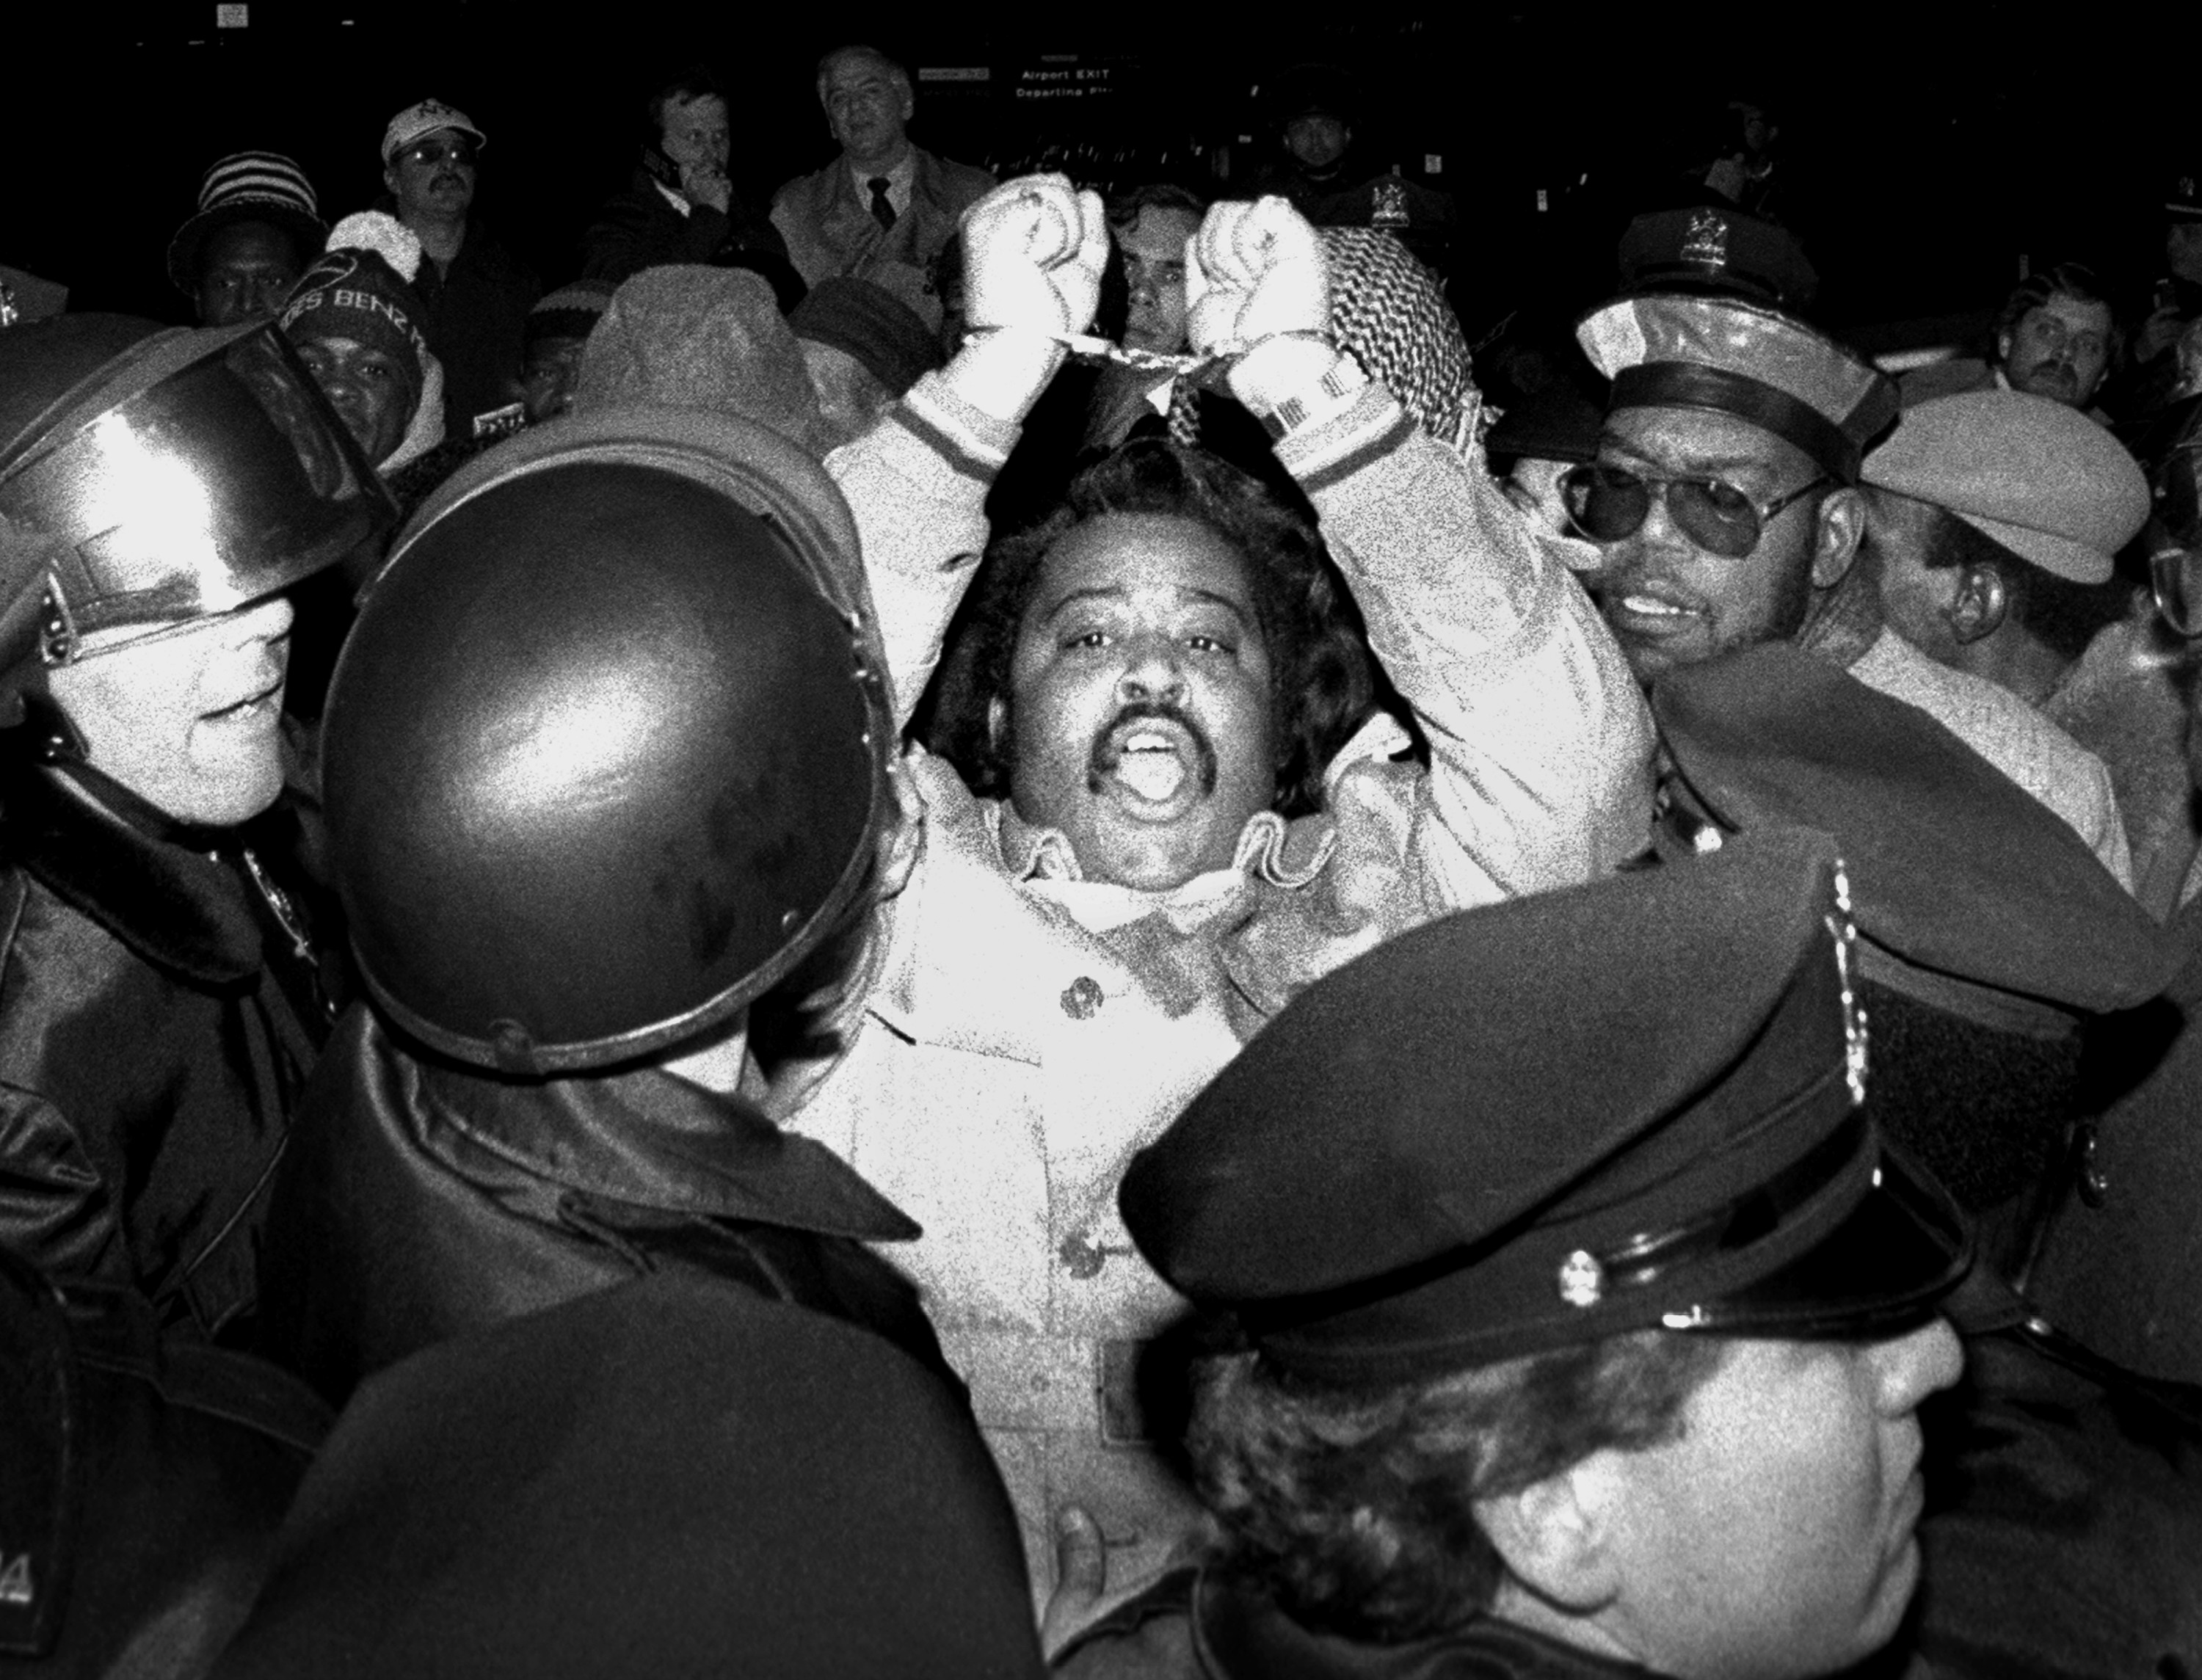 The Rev. Al Sharpton is arrested during an anti-racism demonstration at La Guardia Airport in New York City on Jan. 27, 1987.